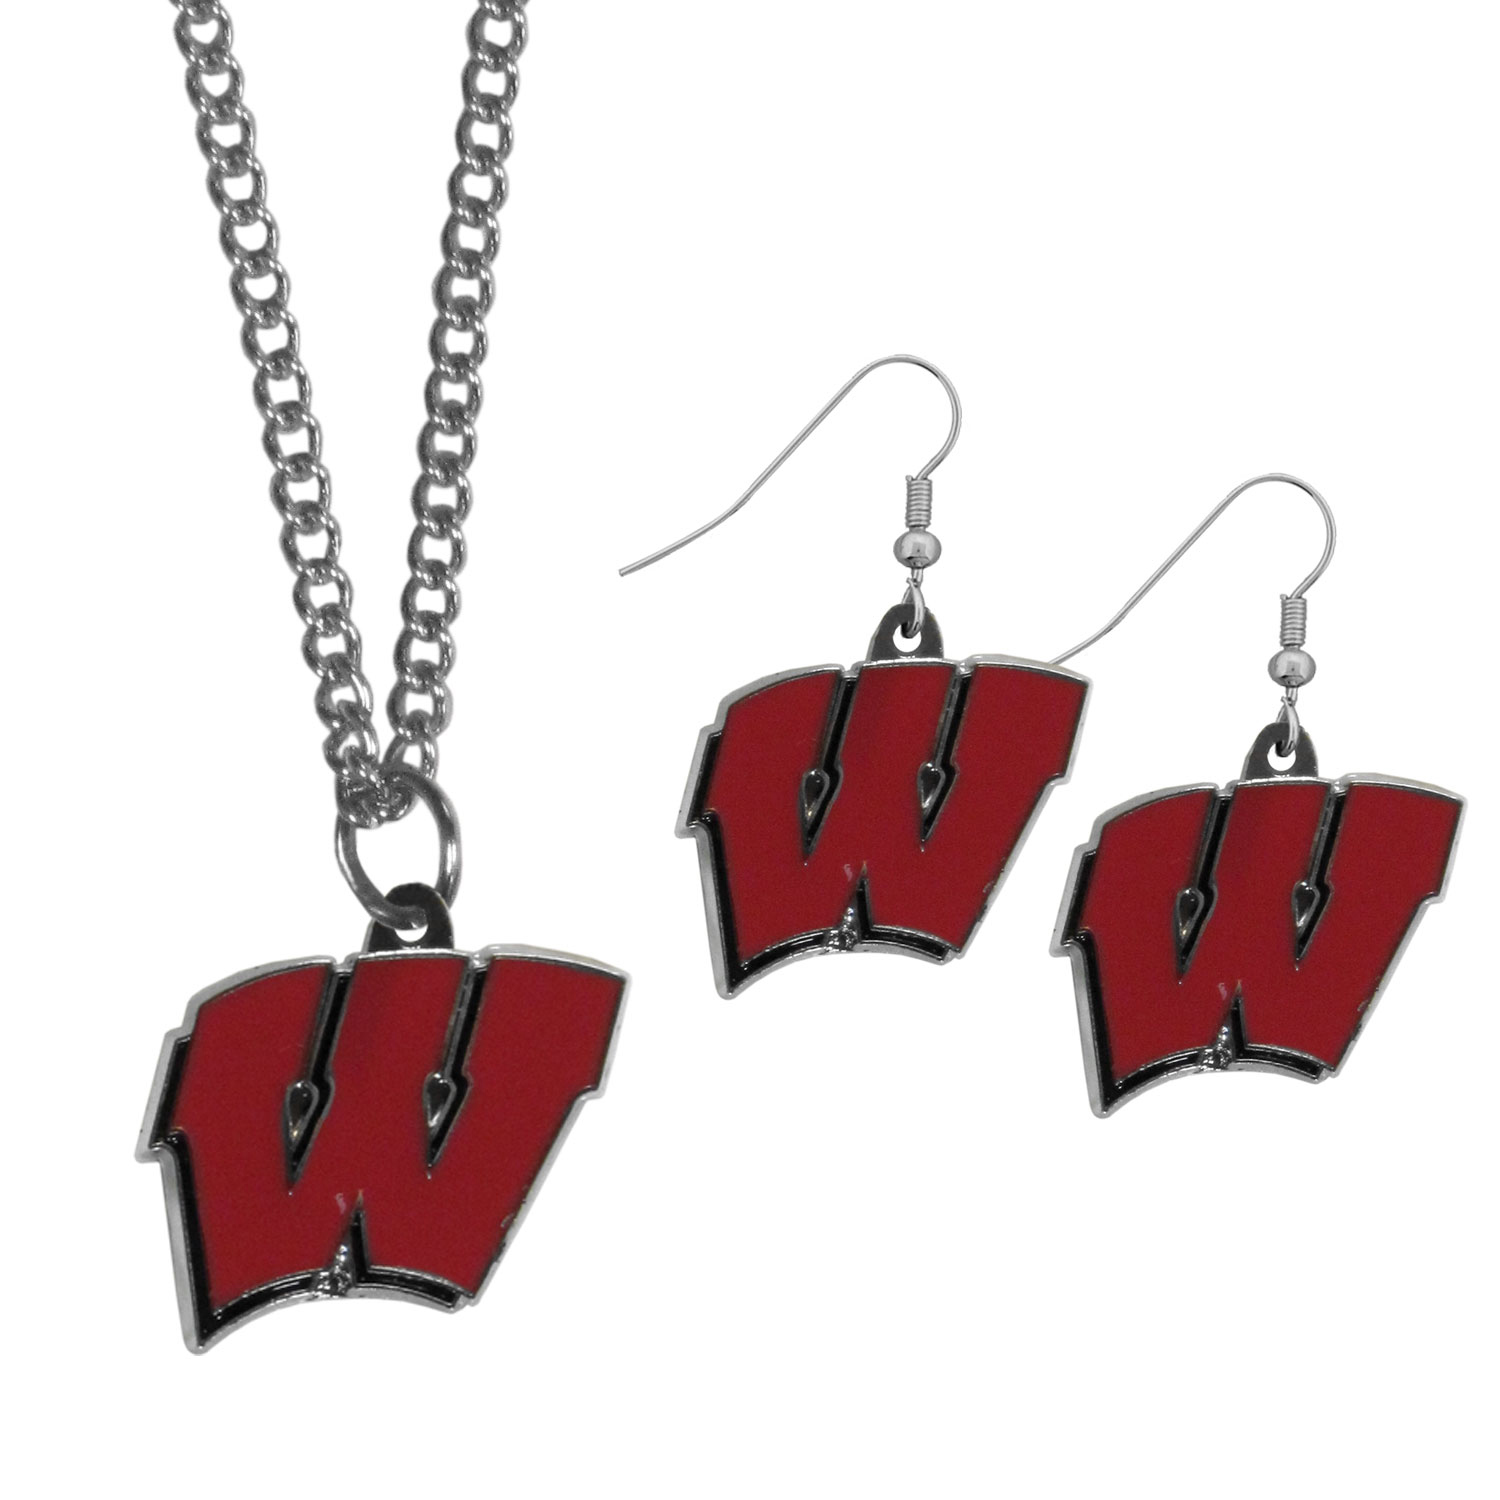 Wisconsin Badgers Dangle Earrings and Chain Necklace Set - This classic jewelry set contains are most popular Wisconsin Badgers dangle earrings and 22 inch chain necklace. The trendy, dangle earrings are lightweight and feature a fully cast metal team charm with enameled team colors. The matching necklace completes this fashion forward combo and is a spirited set that is perfect for game day but nice enough for everyday.